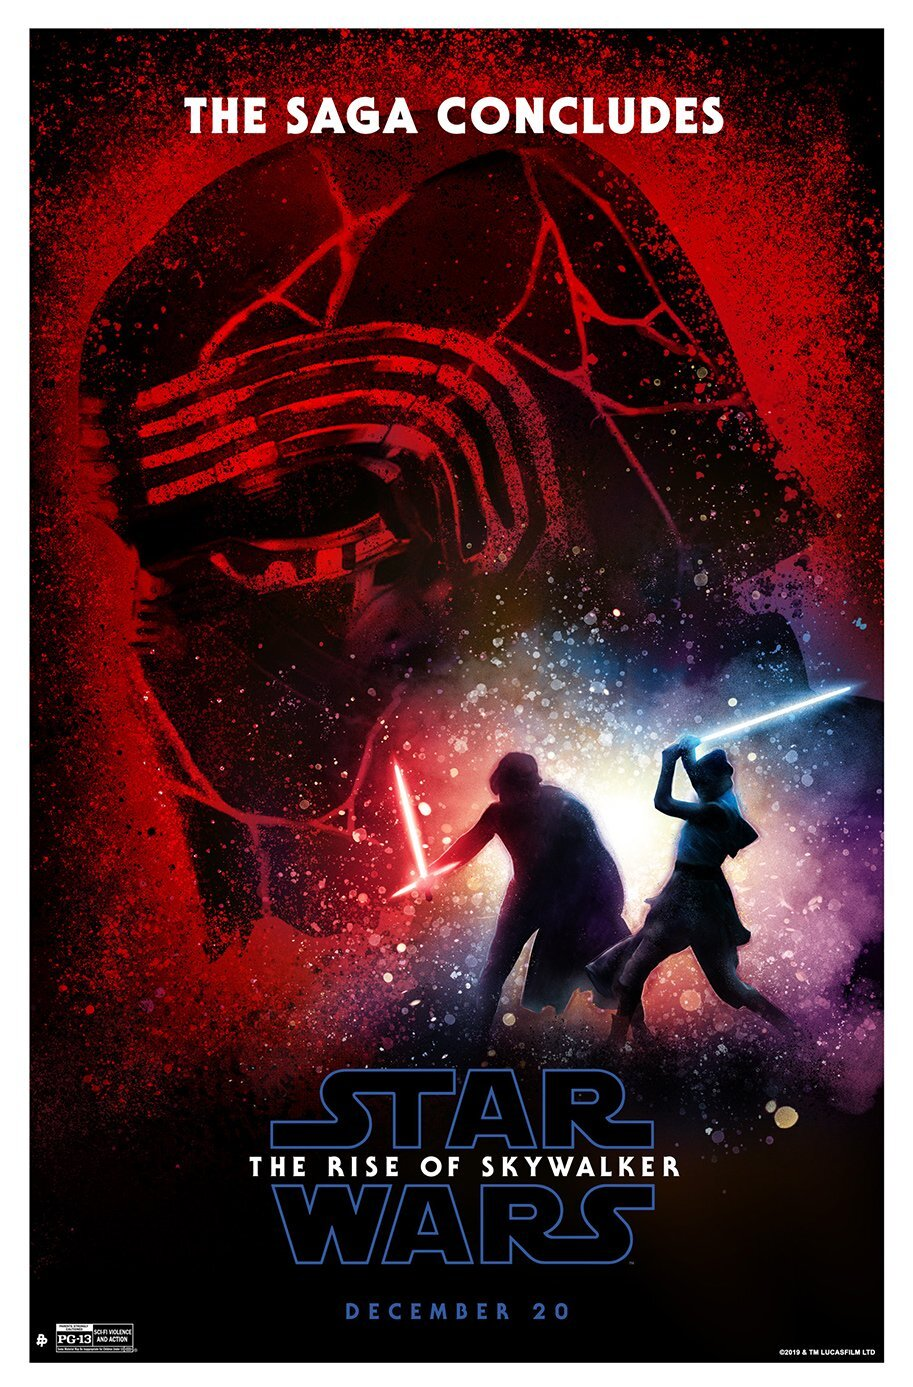 Star Wars The Rise Of Skywalker Gets A Revenge Of The Jedi Inspired Poster Fizx